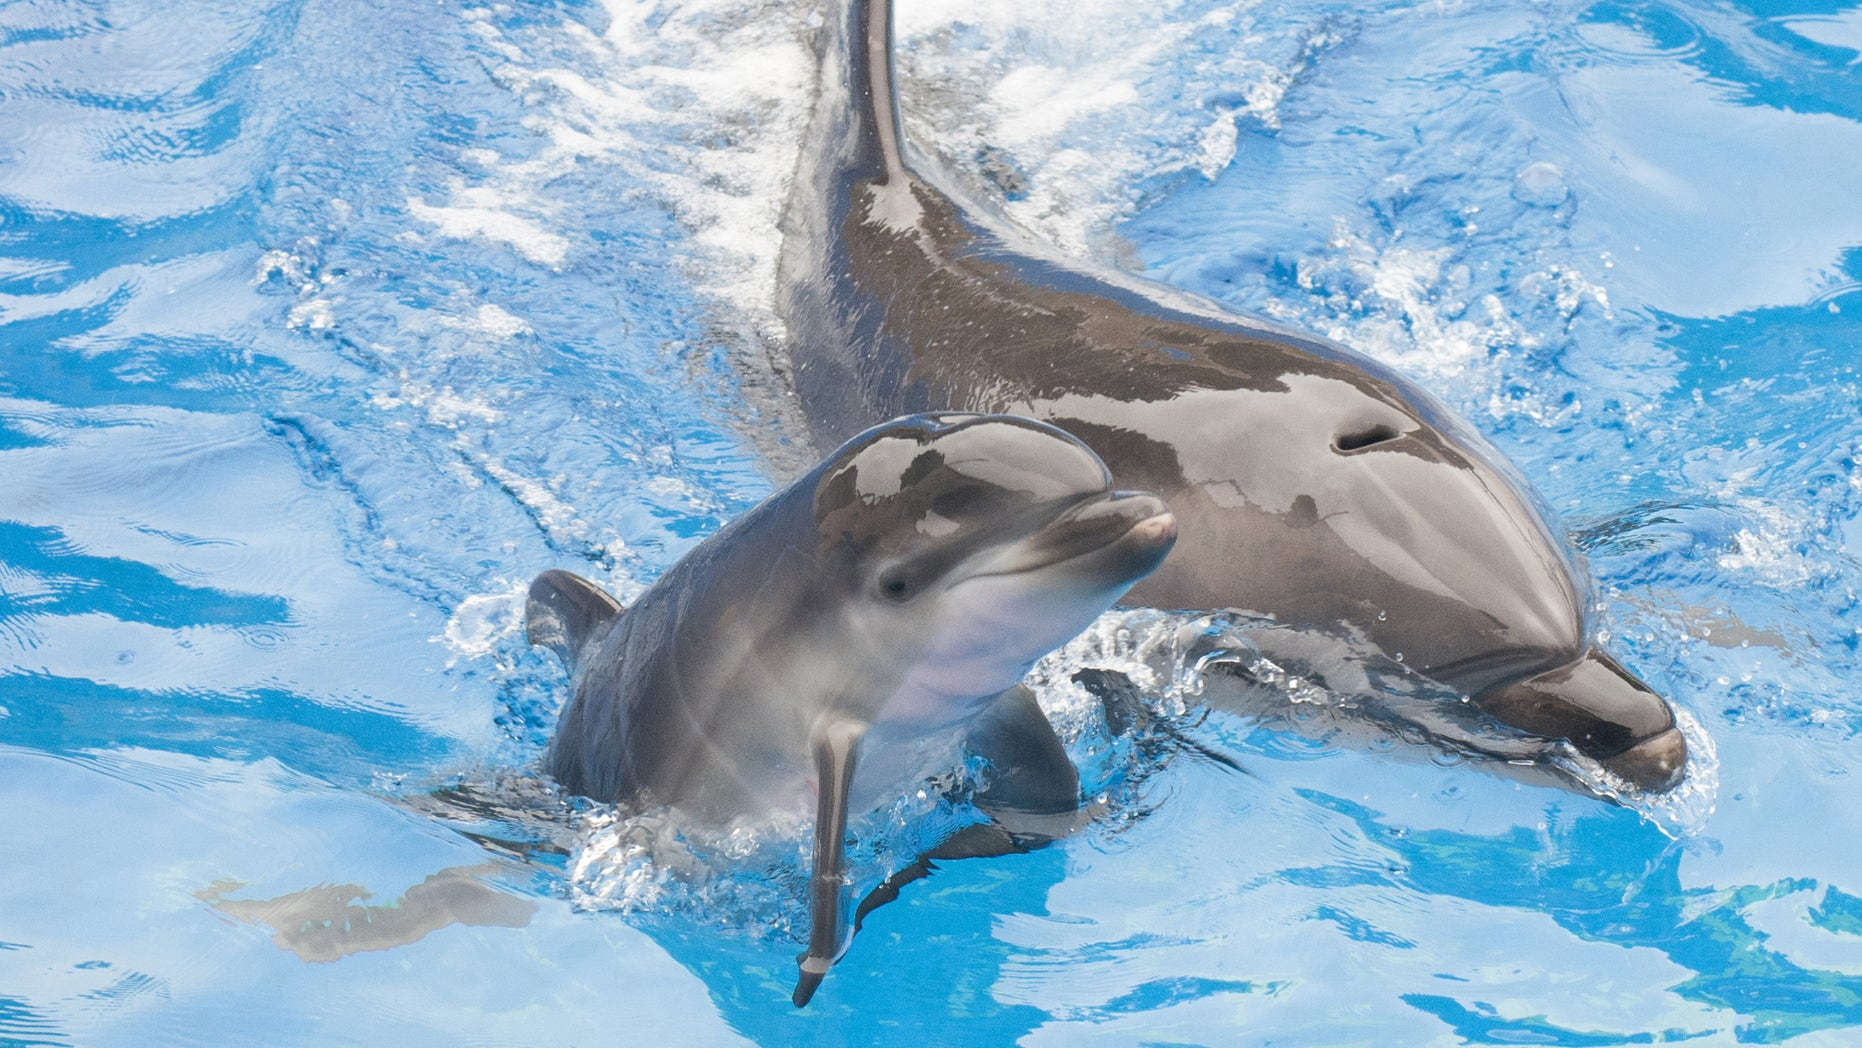 SAN DIEGO, CA - OCTOBER 20:  In this handout photo provided by SeaWorld San Diego, Sadie, a 13-year-old bottlenose dolphin at SeaWorld San Diego, swims with her newborn calf at the marine park's Dolphin Stadium October 20, 2014 in San Diego, California.  The calf, born on Saturday, Oct. 18 at 3:32 p.m., is strong and appears to be in good health. She is nursing regularly and continues to bond with its mother. This is the 80th bottlenose dolphin born at SeaWorld San Diego. (Photo by Mike Aguilera/SeaWorld San Diego via Getty Images)